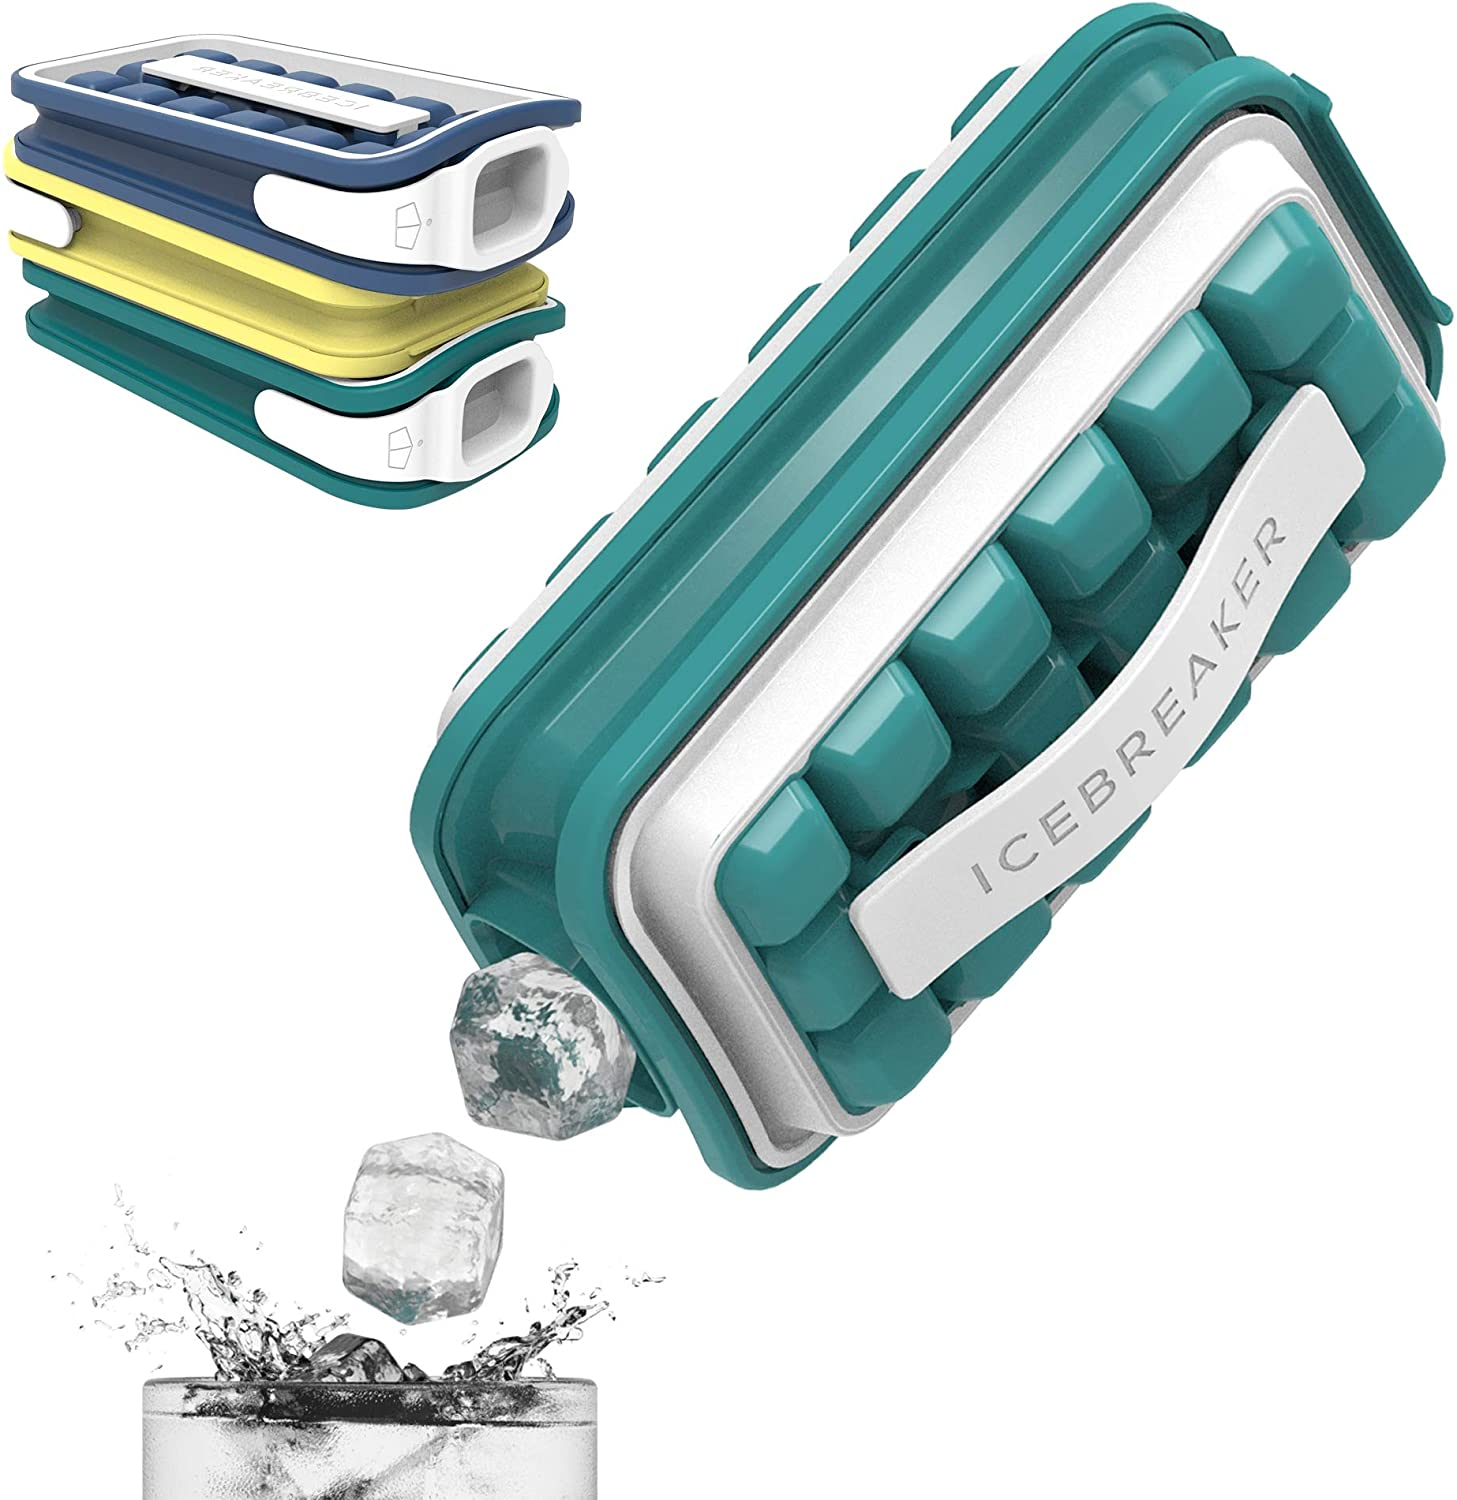 ICEBREAKER POP - The Reinvented Ice Cube Tray Mold - Ice Maker With Lid - Ultra-Portable No Spill Cover, Non-BPA and Reusable - Makes 18 Large Frozen Cubes - Water Blue Color